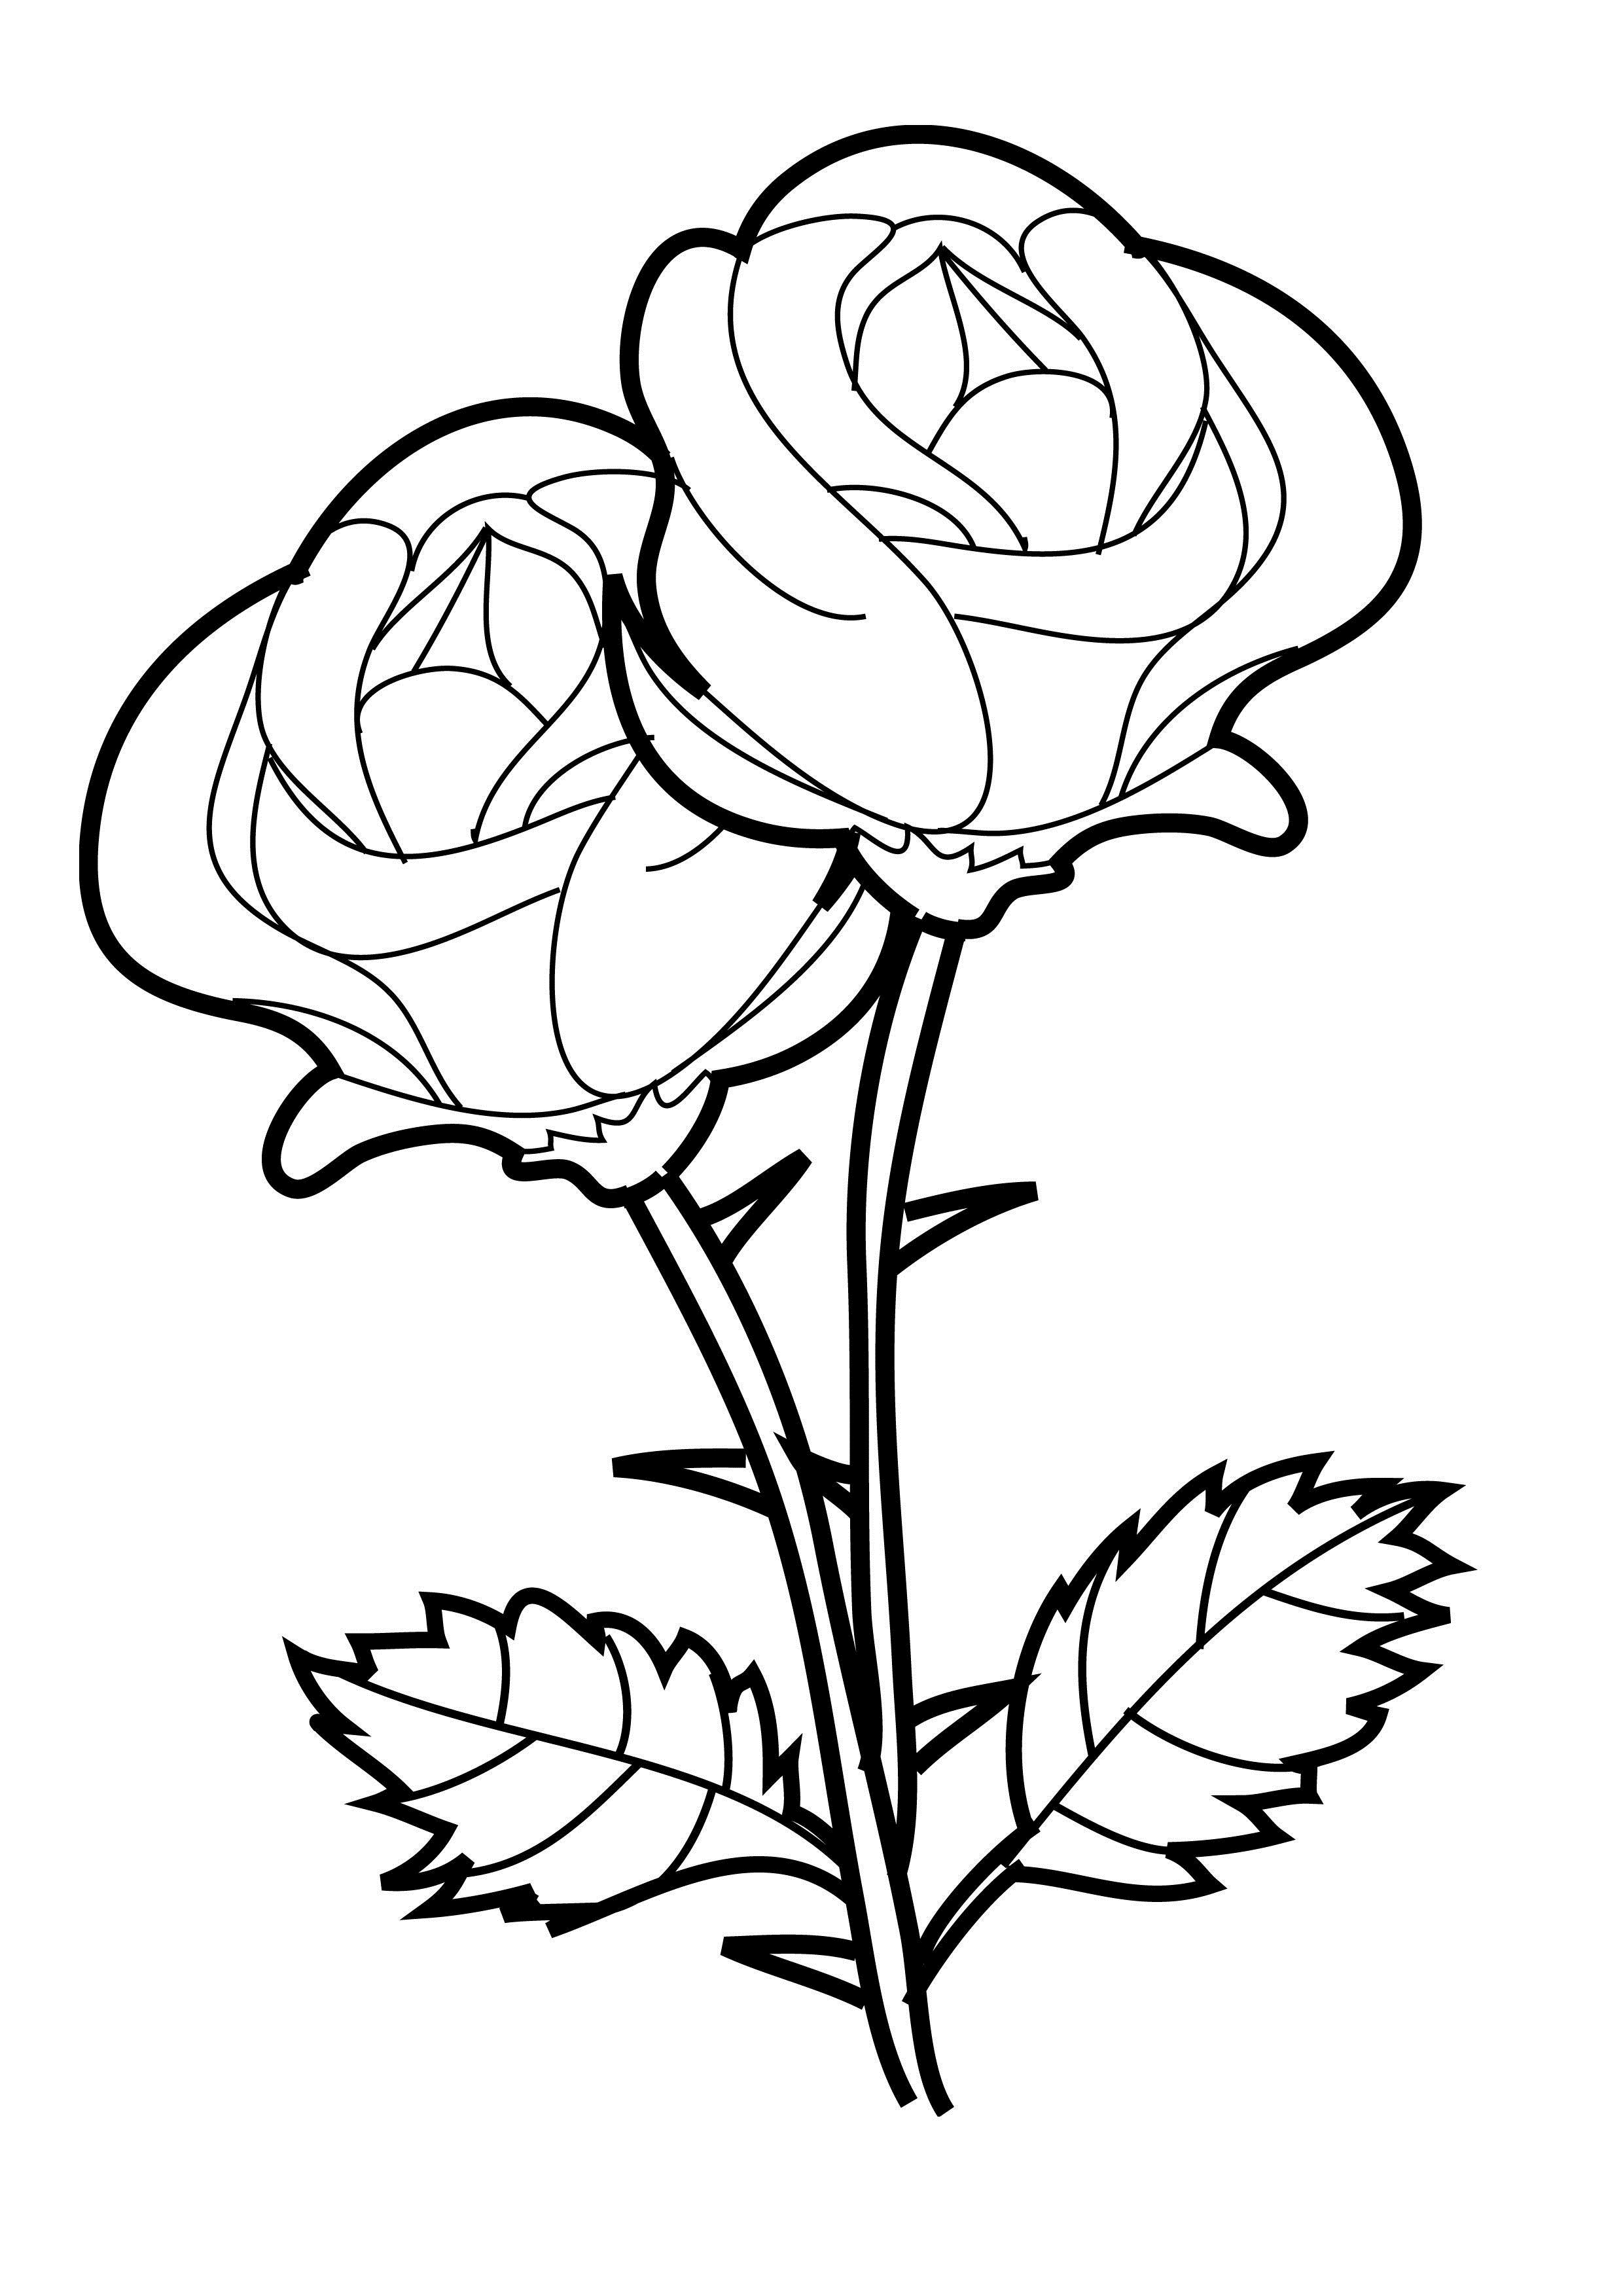 coloring pages rose rose color clipart 20 free cliparts download images on coloring rose pages